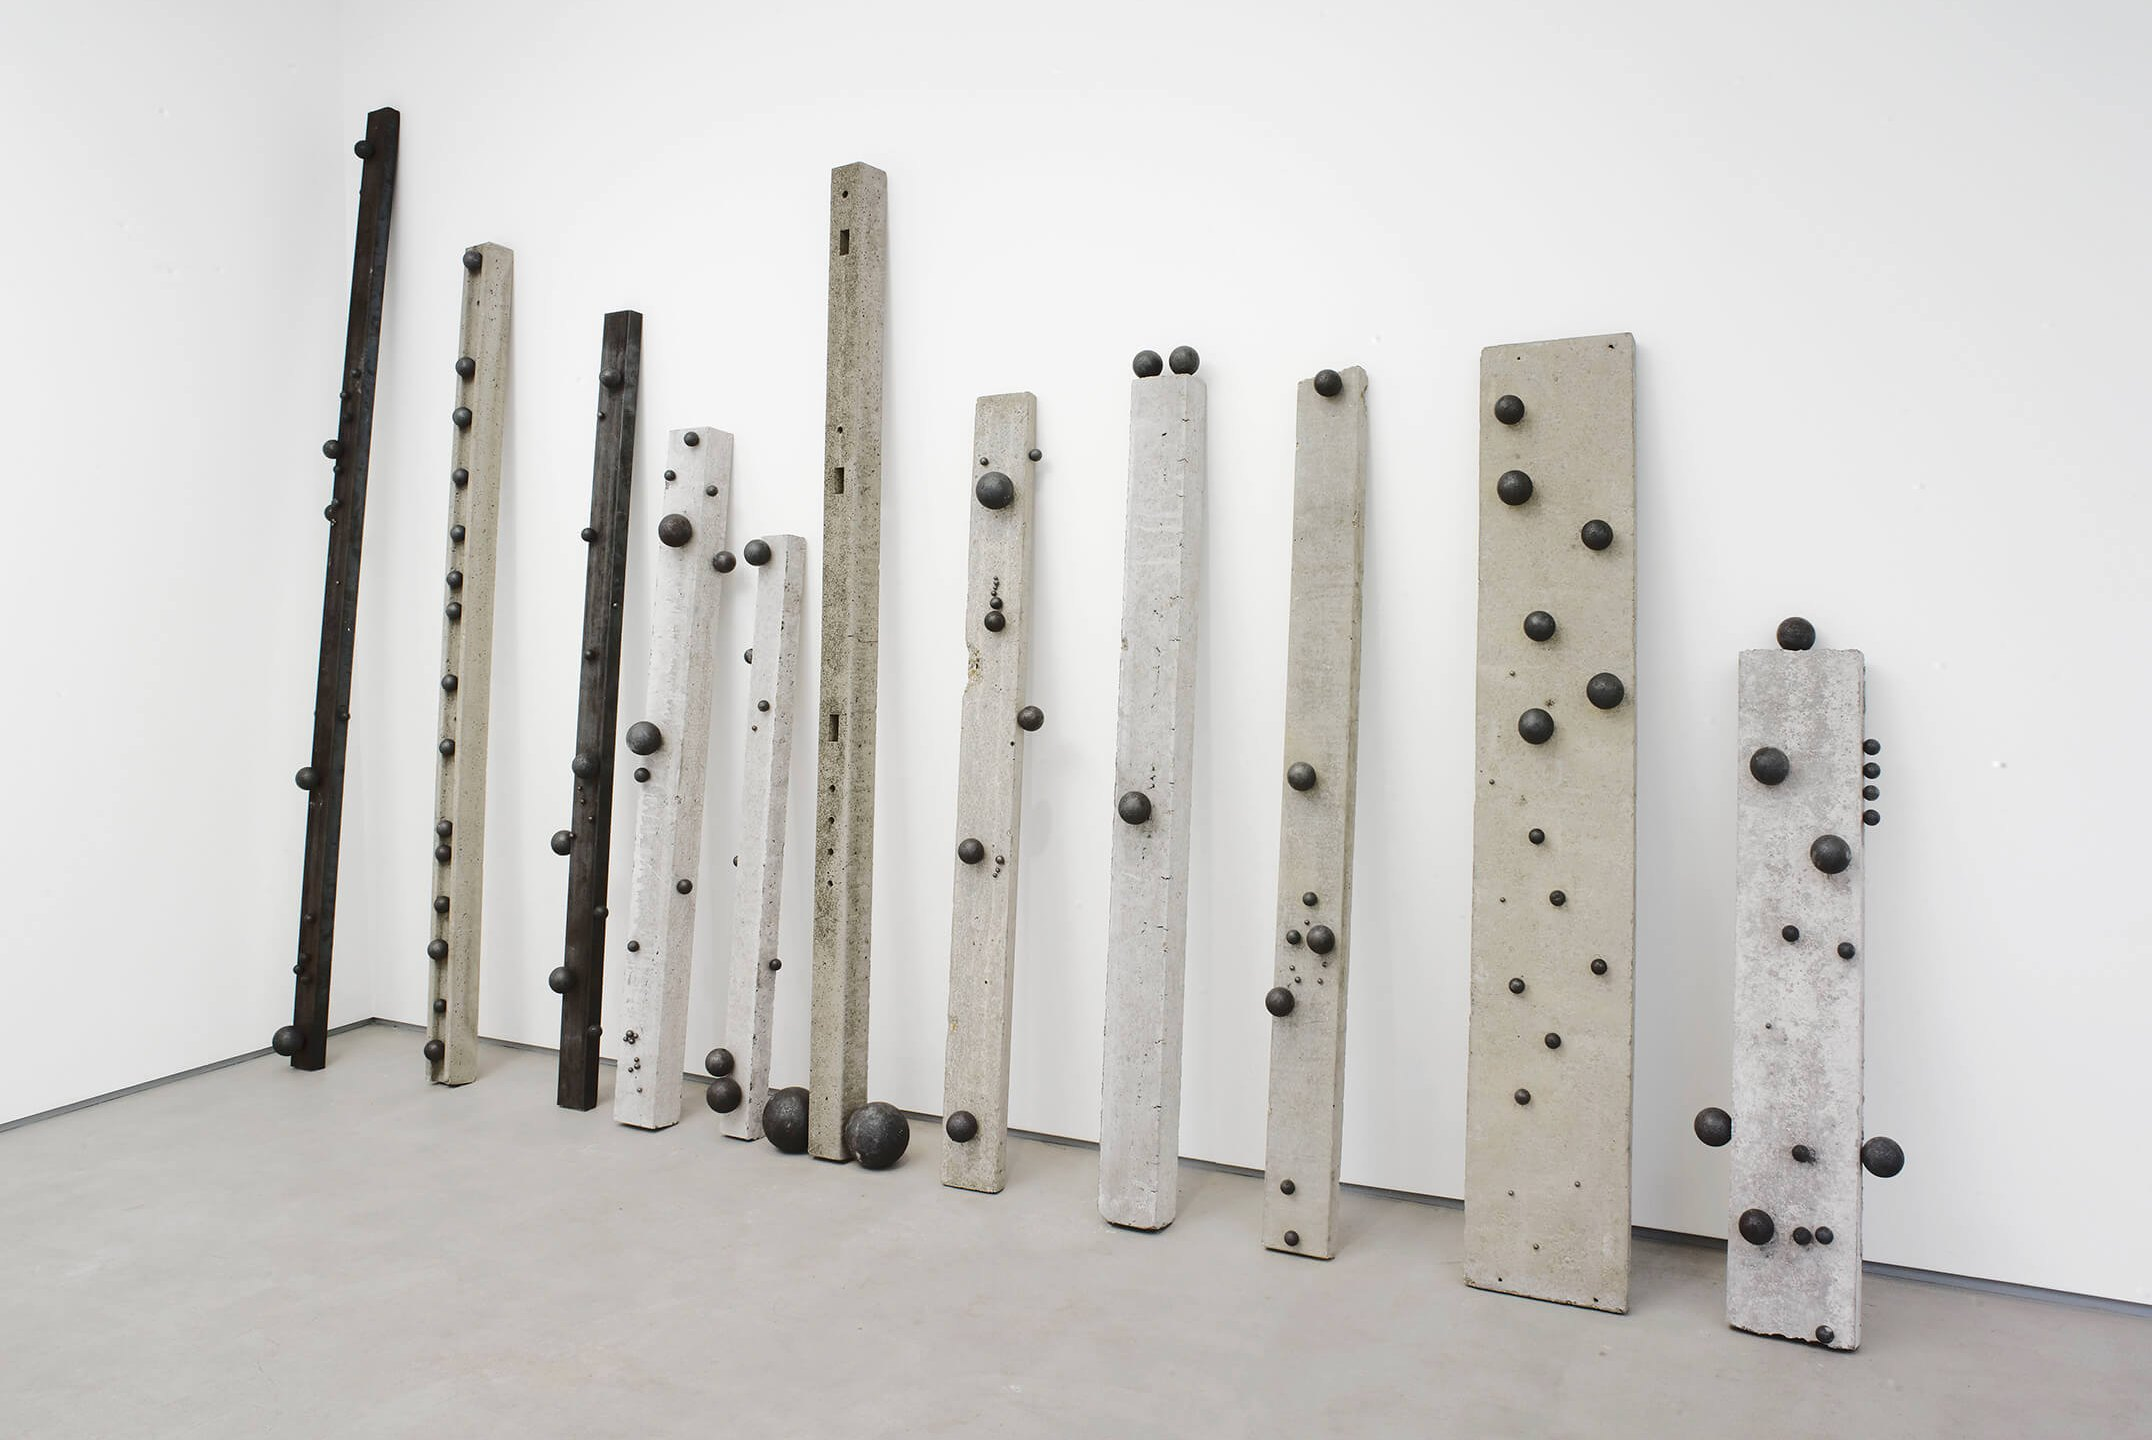 Adriano Costa,<em> International Herpes Society</em>, 2014, concrete, steel and metal, 295 × 428 × 51 cm - Mendes Wood DM